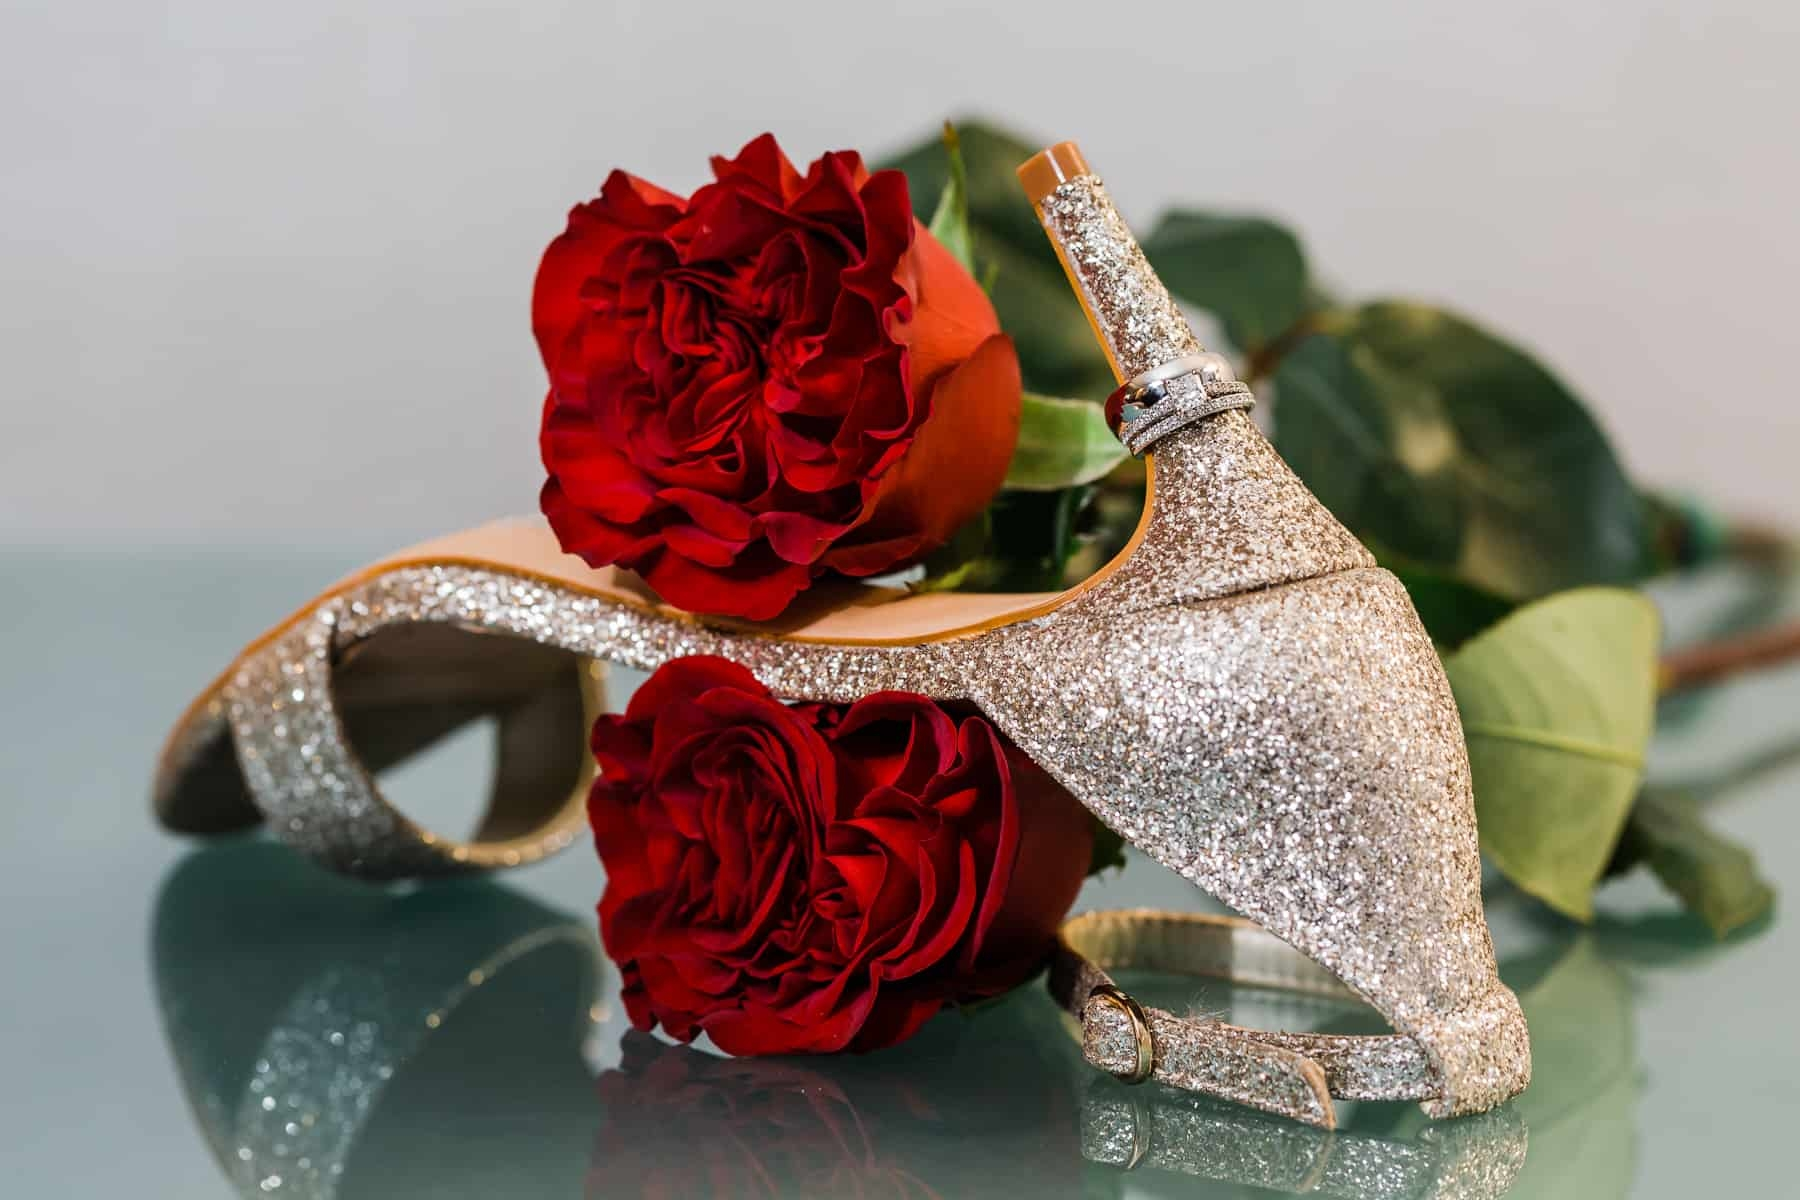 Wedding shoe, rings, and red roses